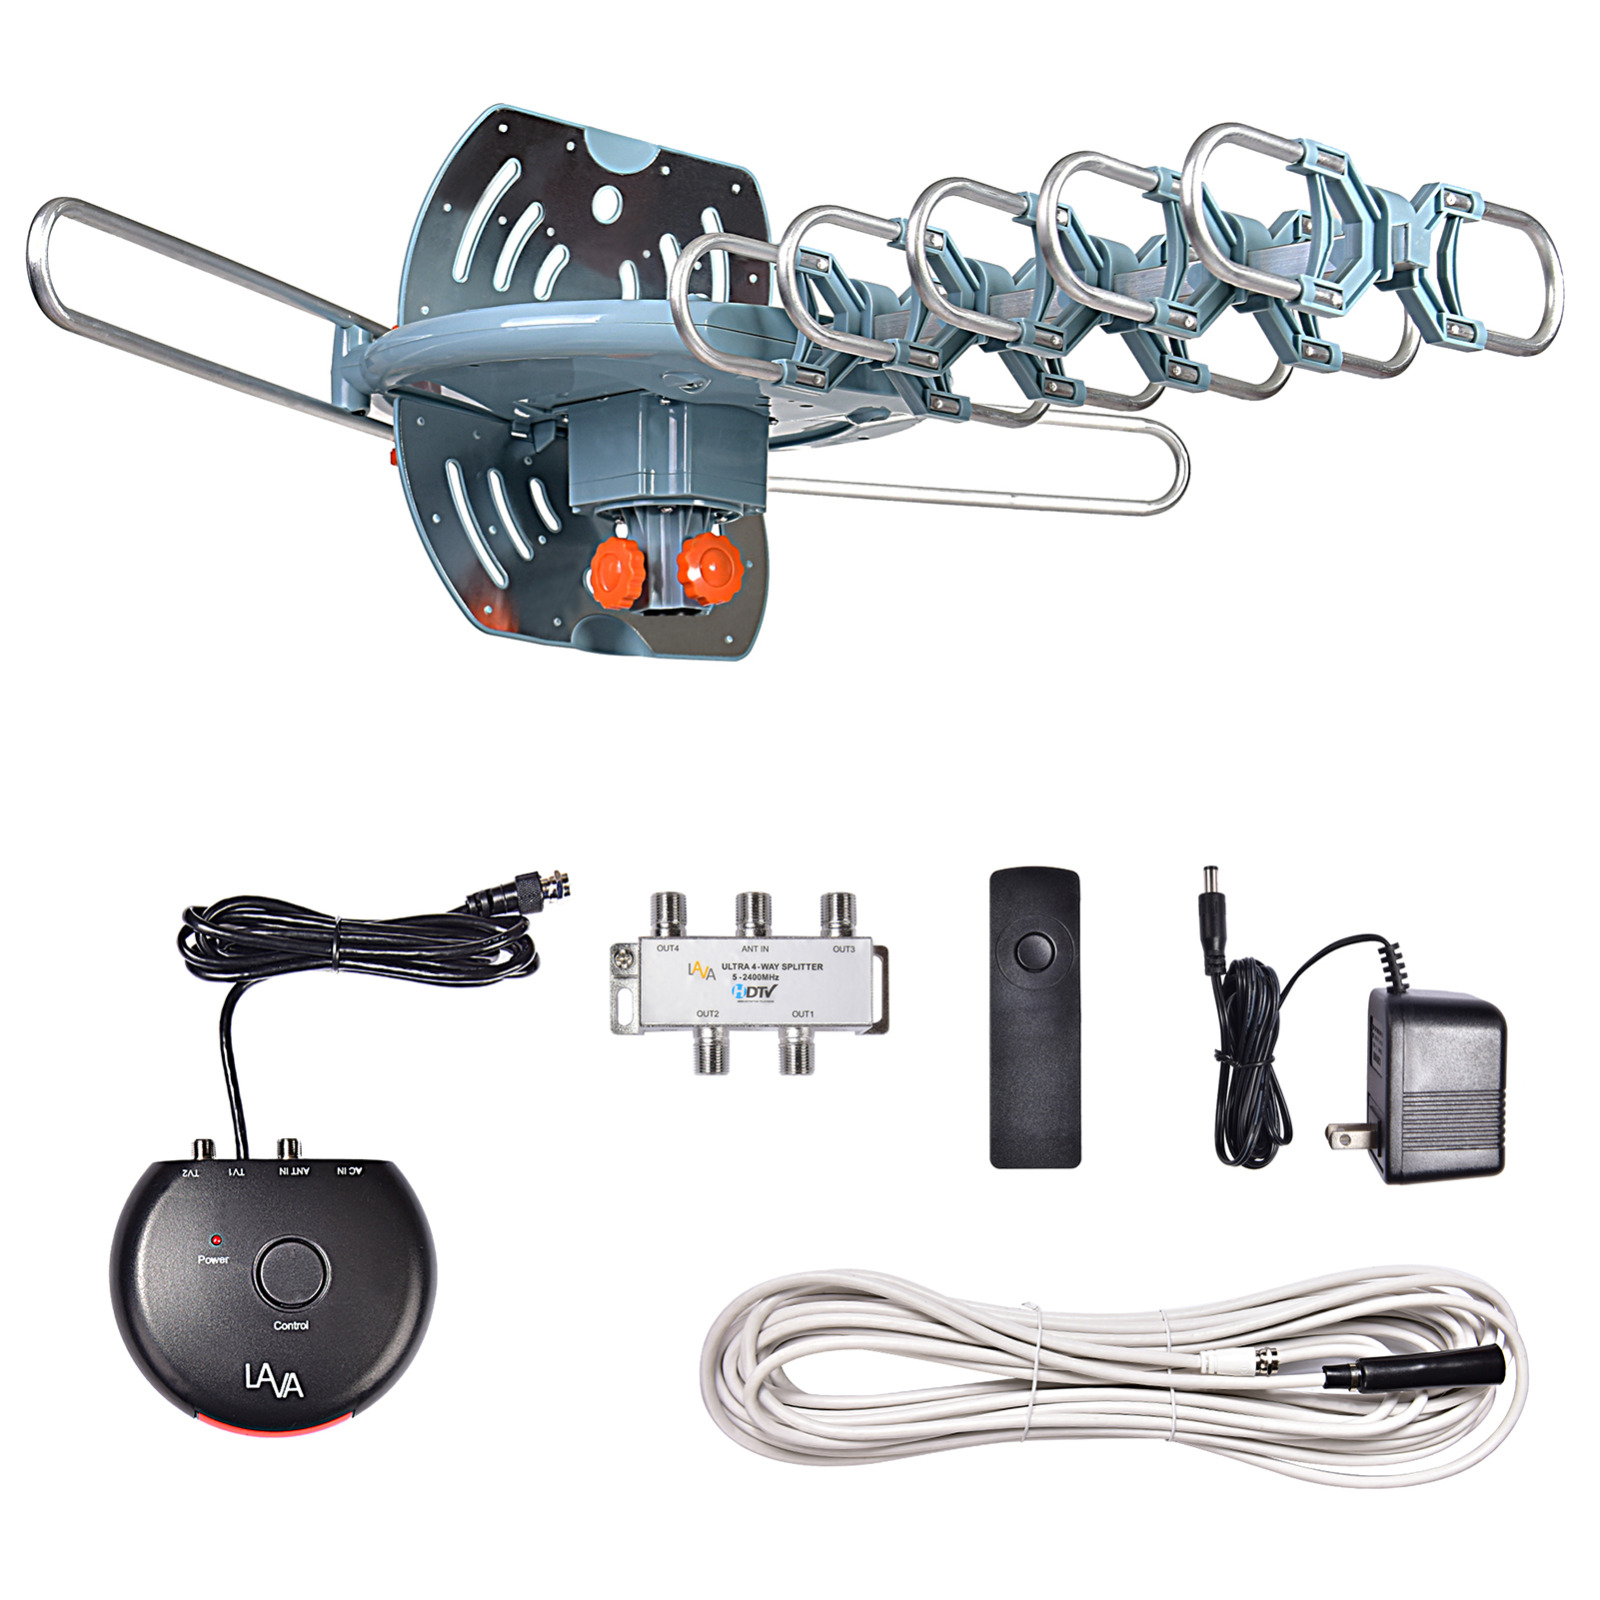 yyelectronicincyy LAVA HD-2605 Elite, Outdoor TV Antenna, Remote Control, 360 Degree Rotation